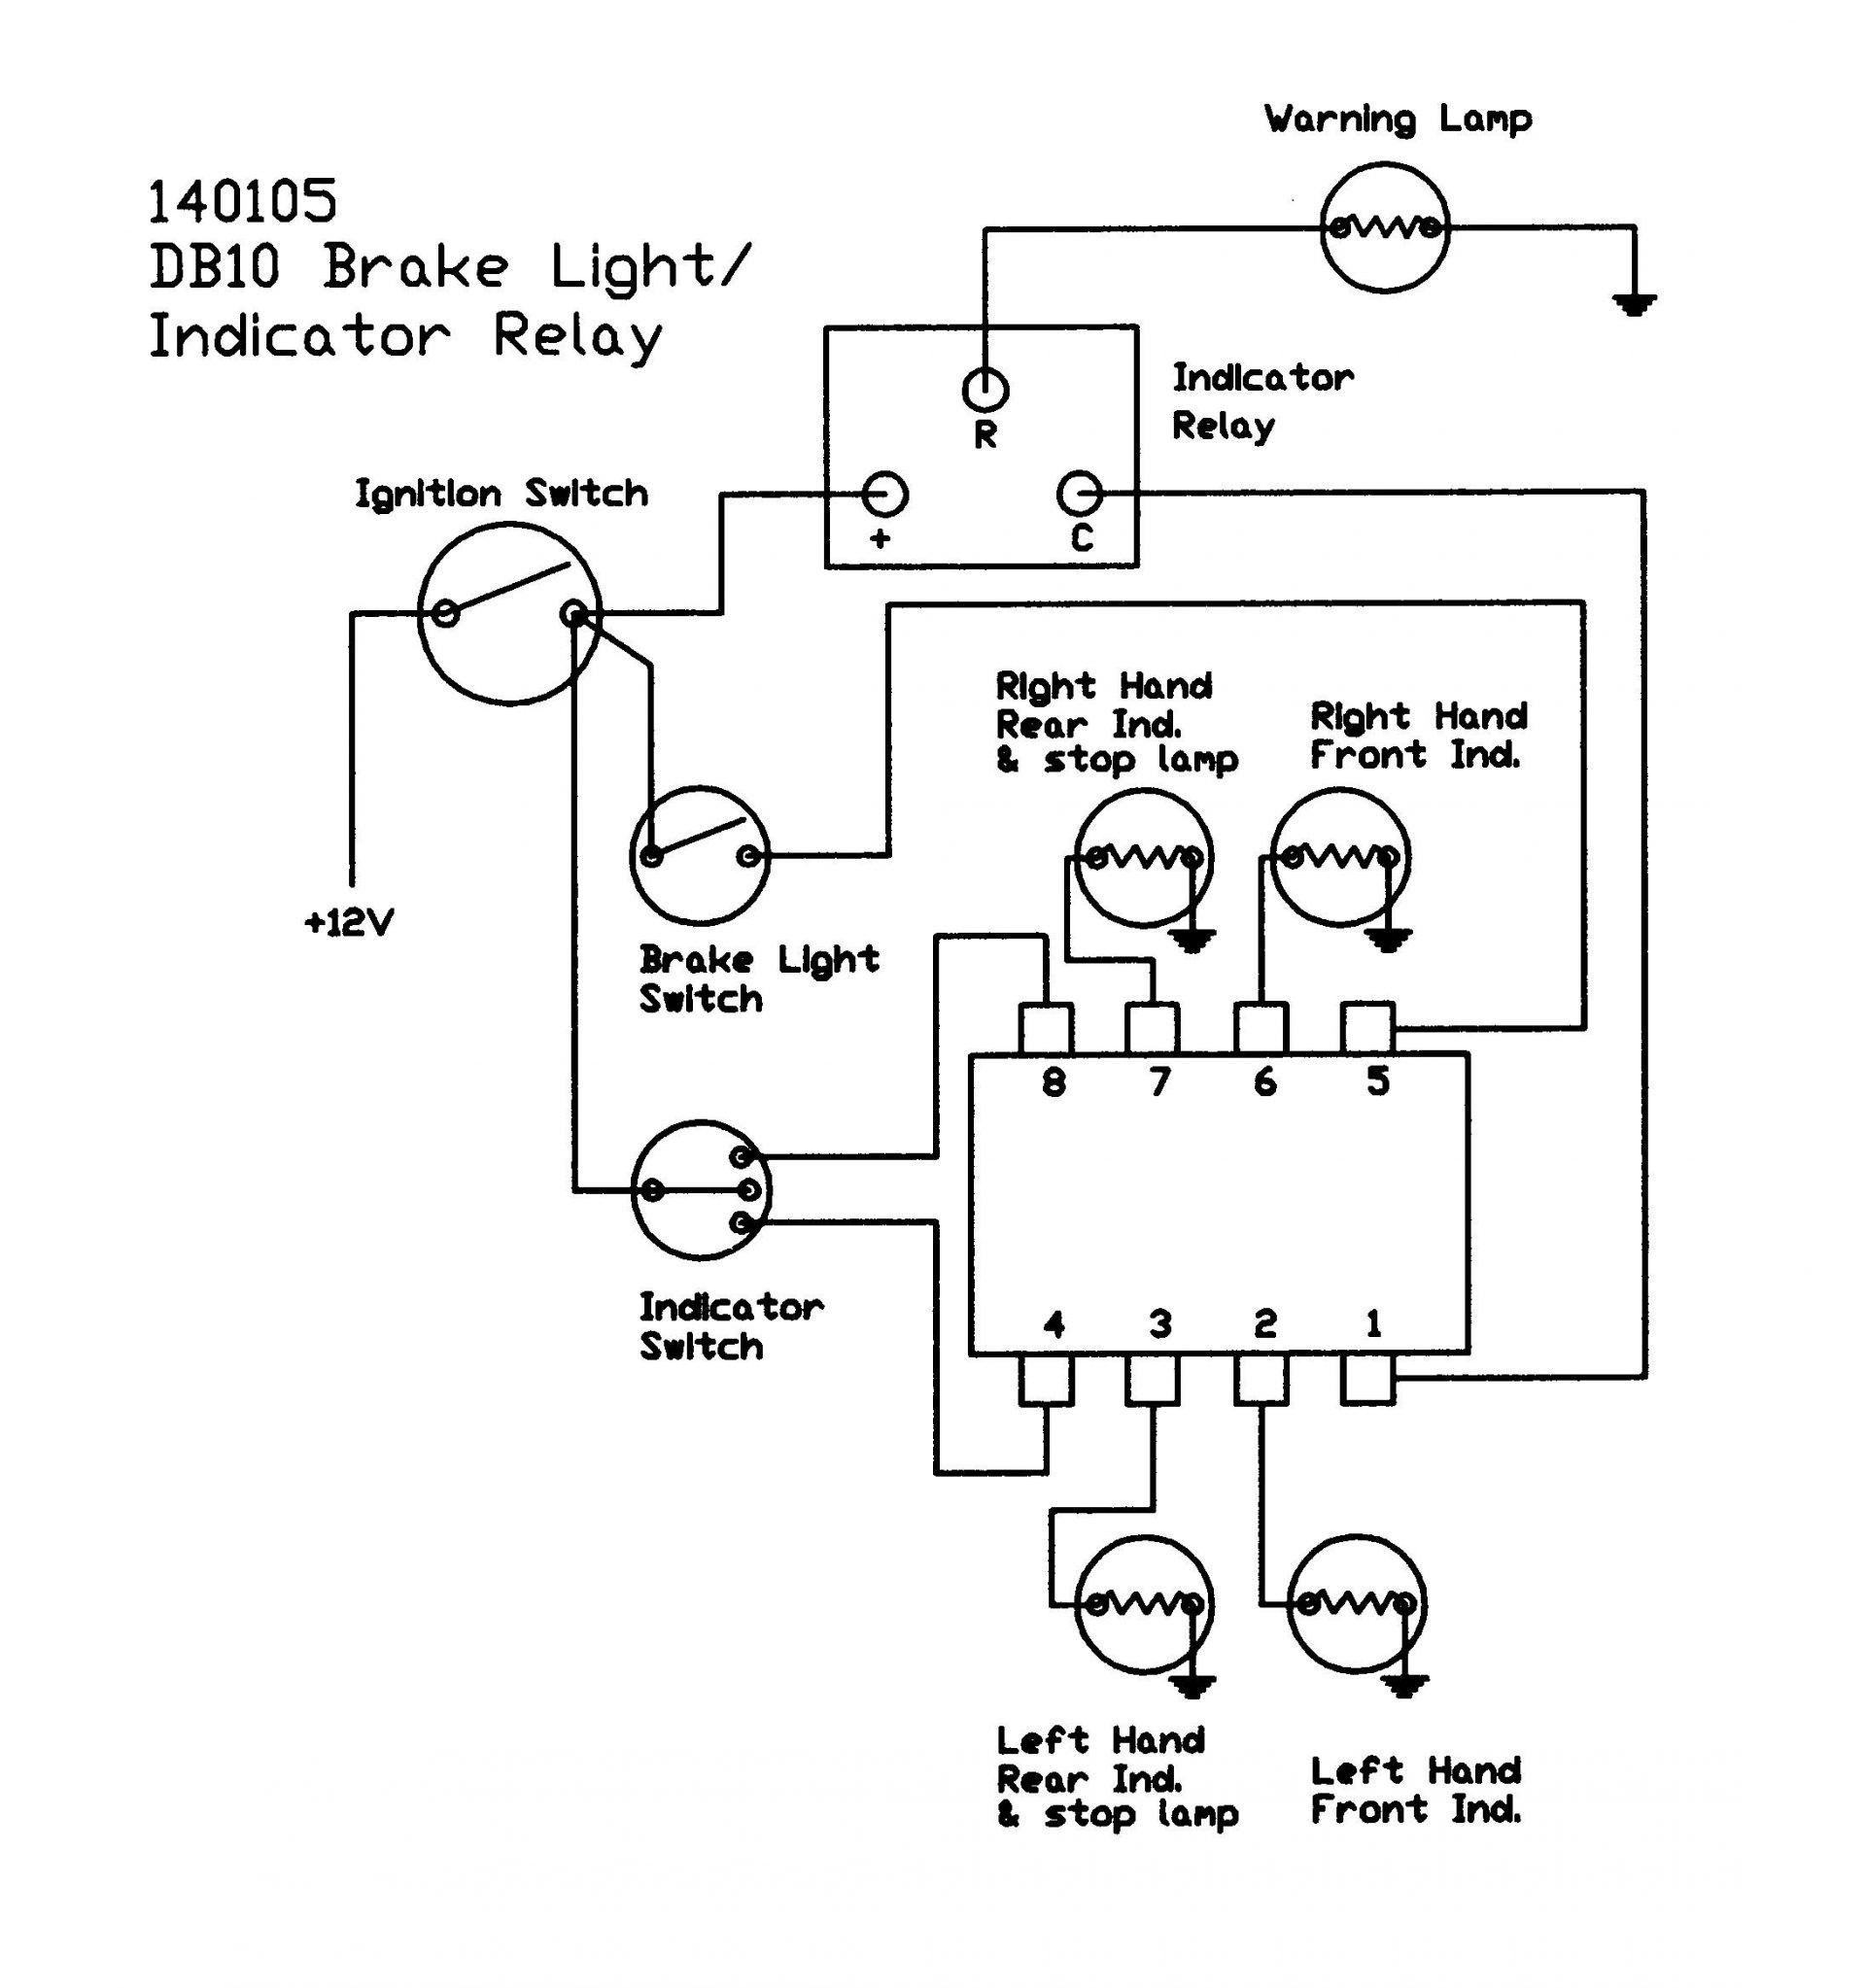 wiring diagram for a dimmer switch in the uk 2005 pontiac vibe stereo light drawing at getdrawings com free personal use 1920x2046 copy 3 gang